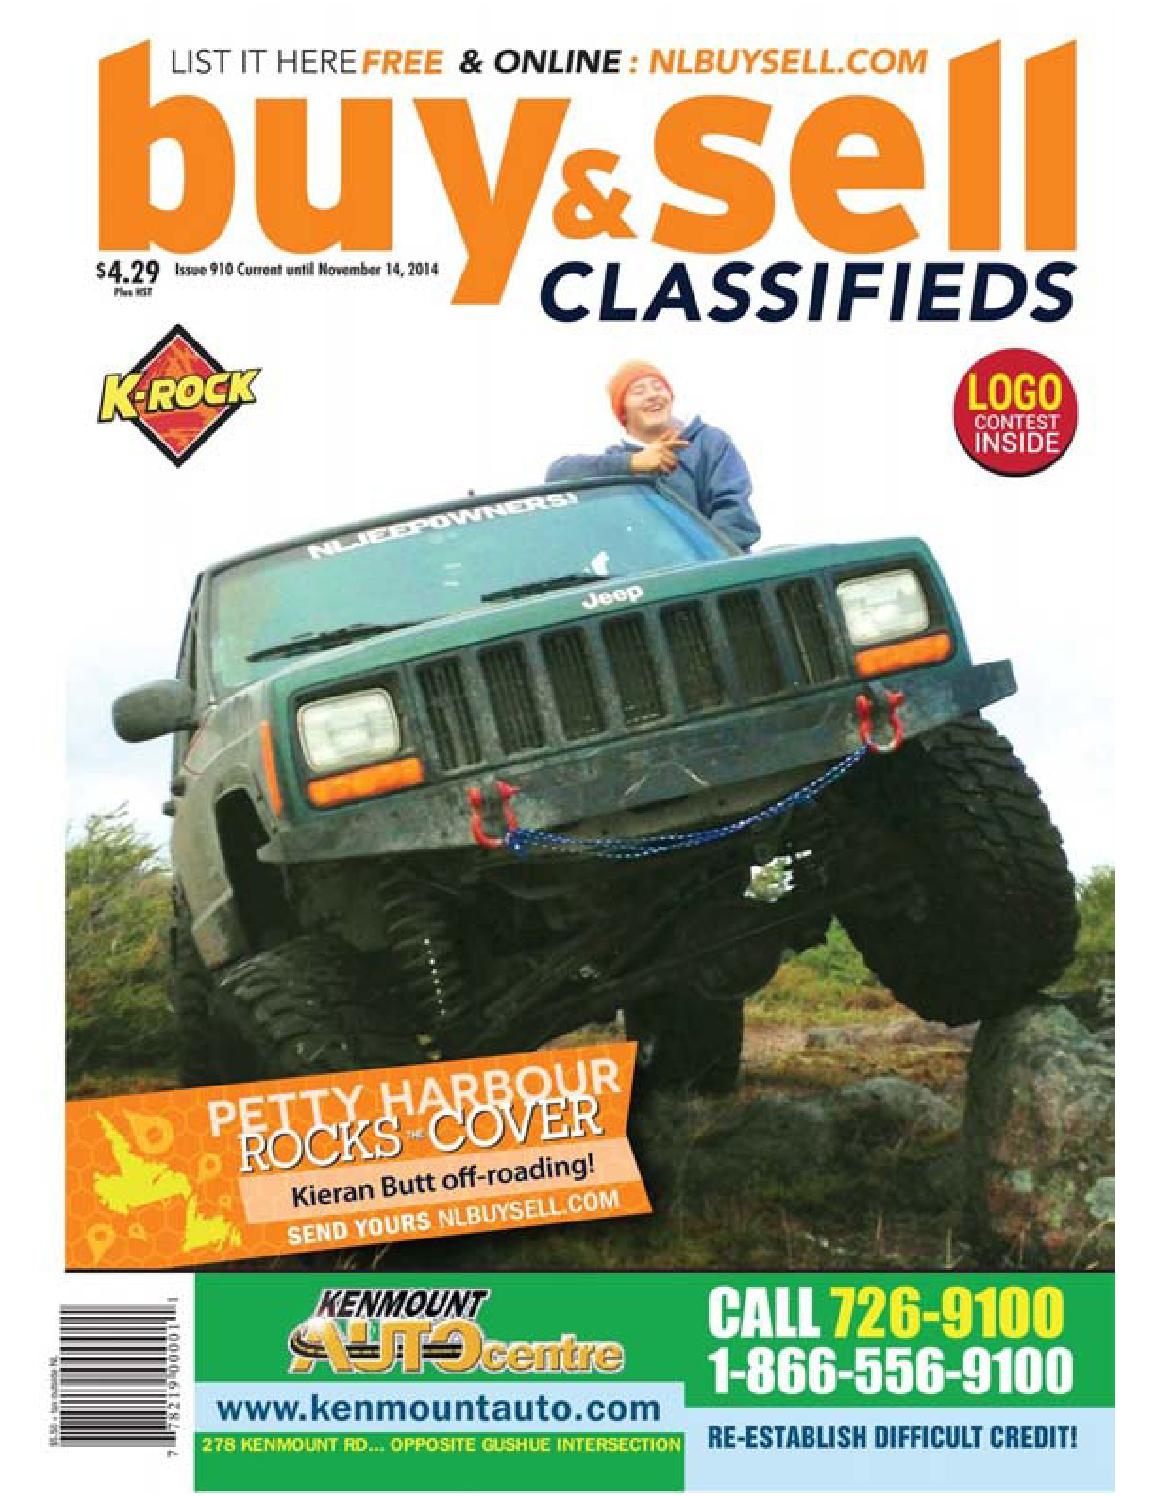 2001 Datsun Frontier Xe Passenger Fuse Box Diagram The Buy Sell Magazine Issue 910 By Nl Issuu